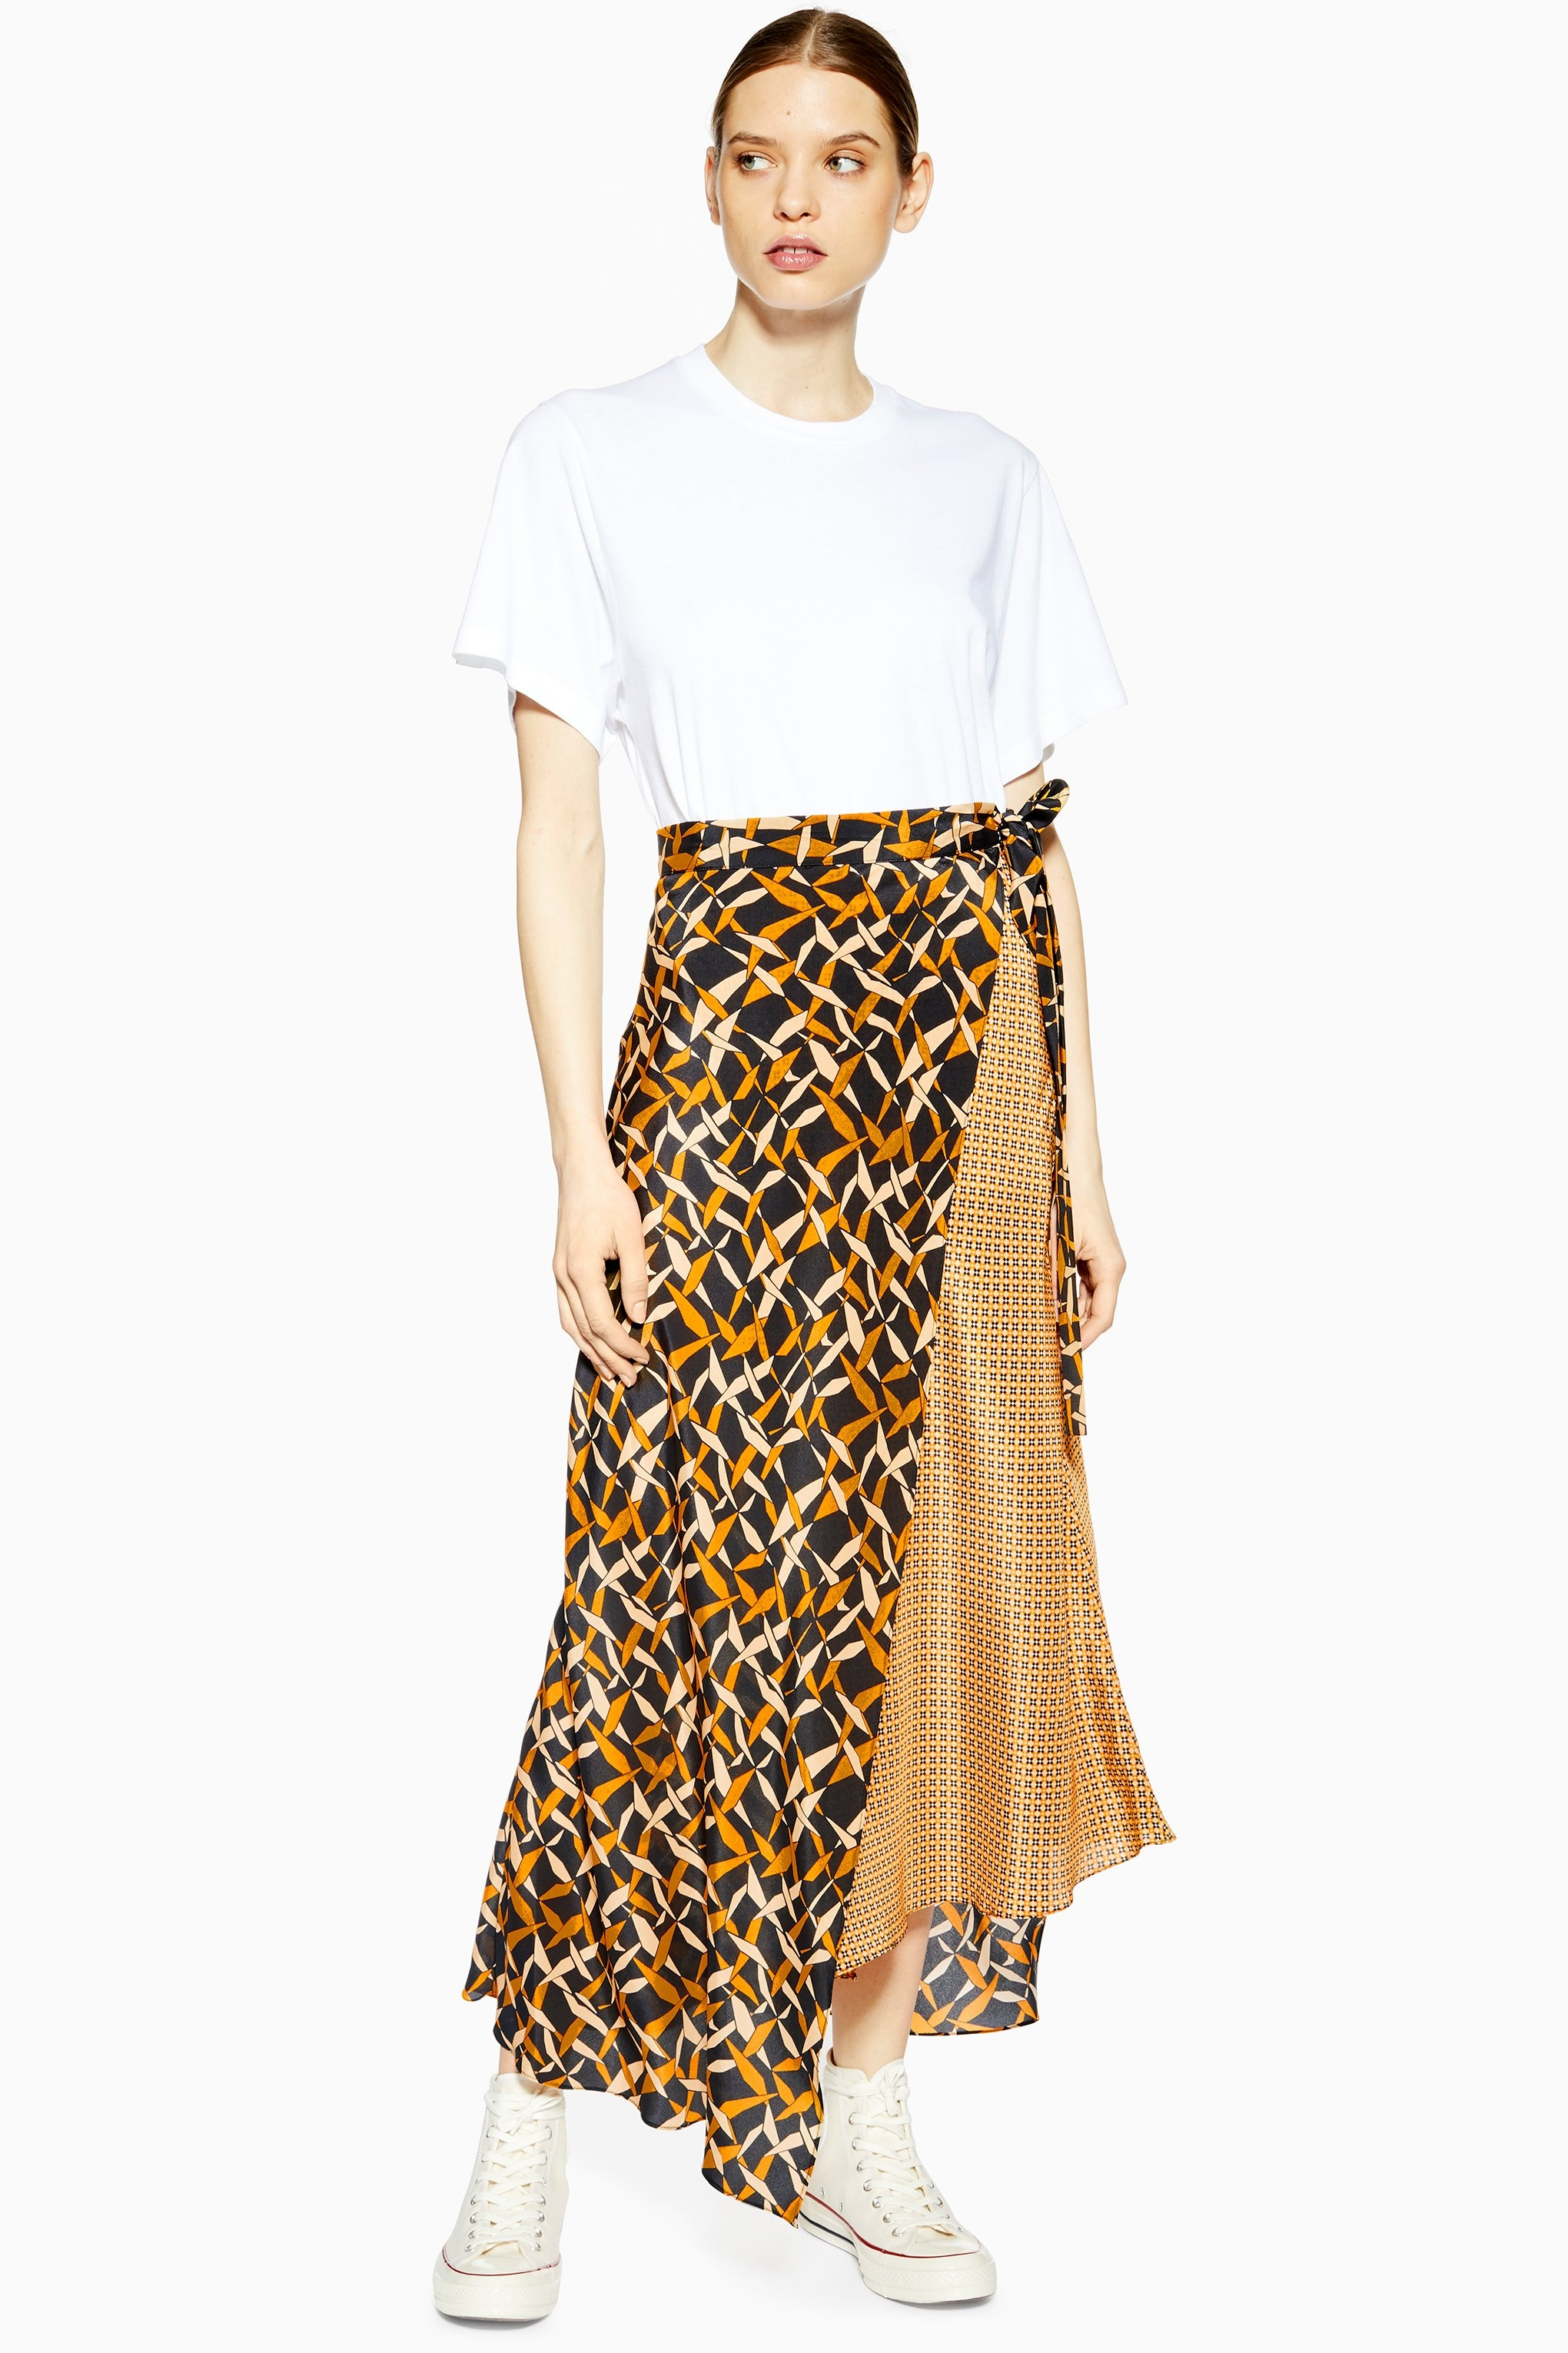 Geometric Silk Skirt - While Topshop once had millions of bog standard satin skirts, they've deviated on the silhouette slightly with these fun asymmetric wrap styles. I'm really into this mixed scarf print one (and not just because it's on sale).Priced at £45, available at Topshop